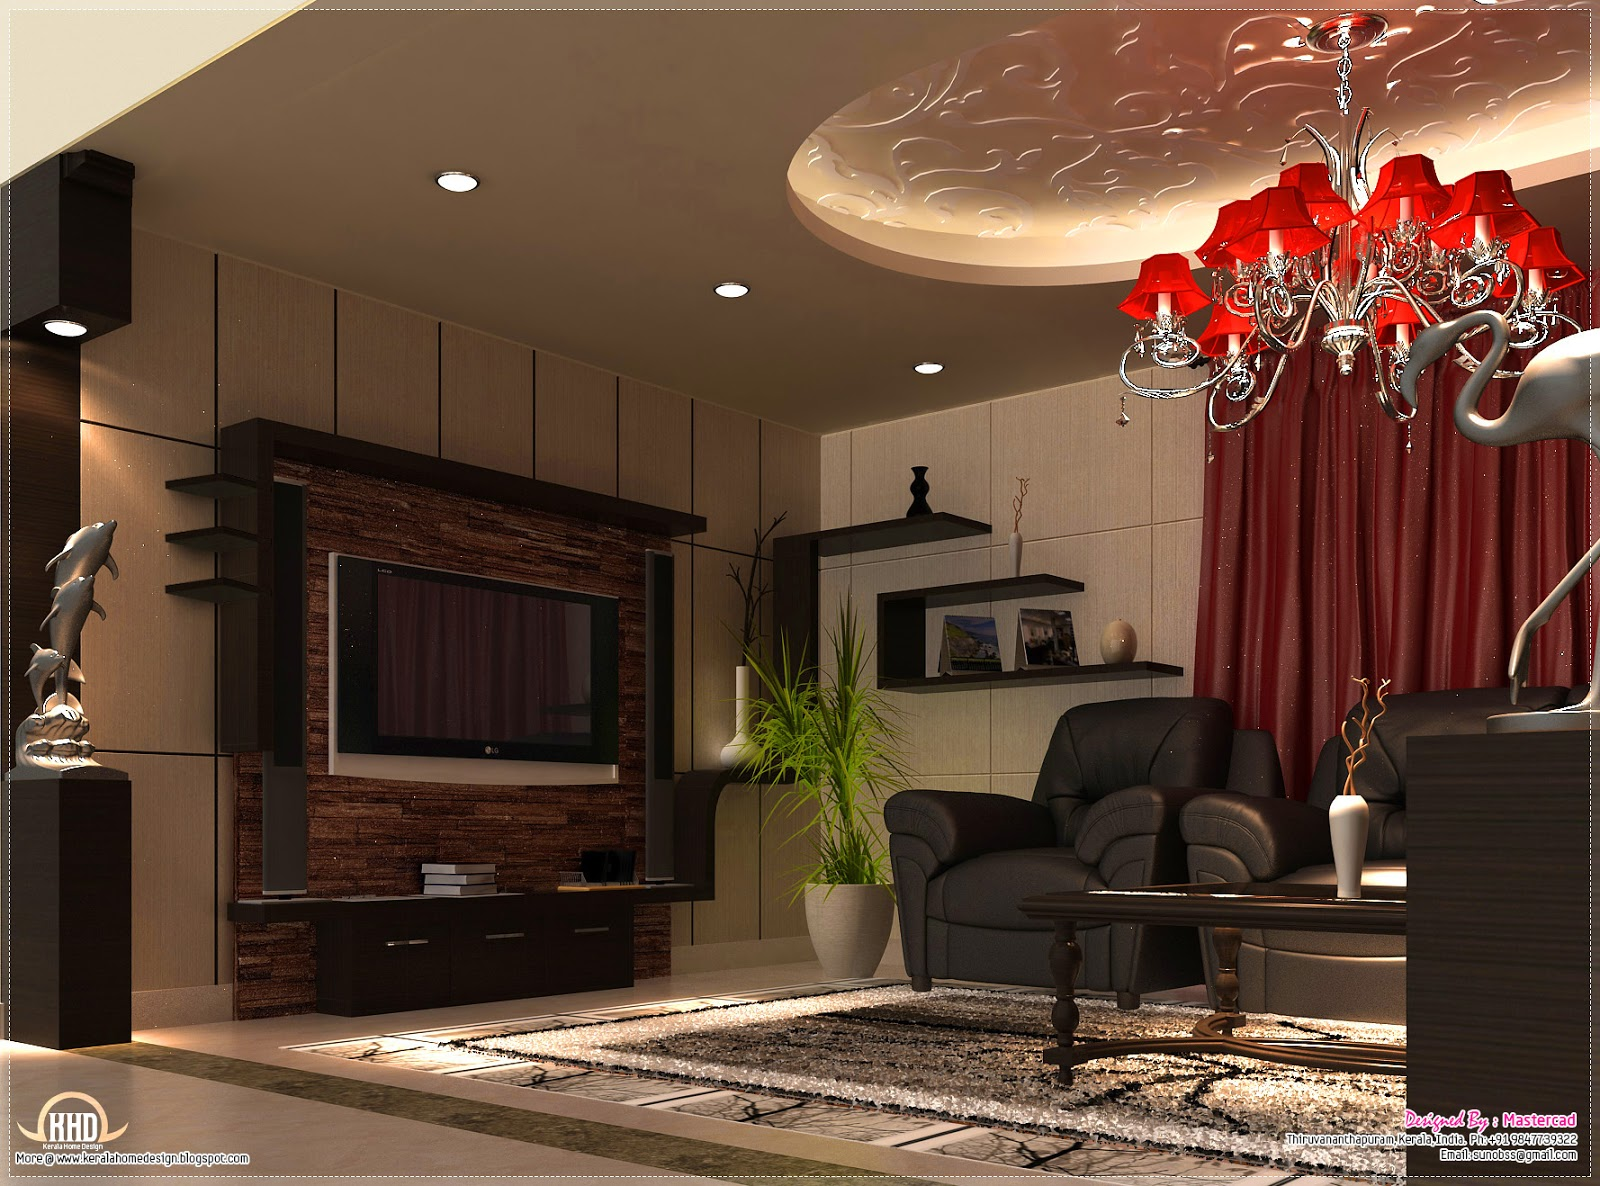 Interior design ideas kerala home design and floor plans for Interior design decoration tips